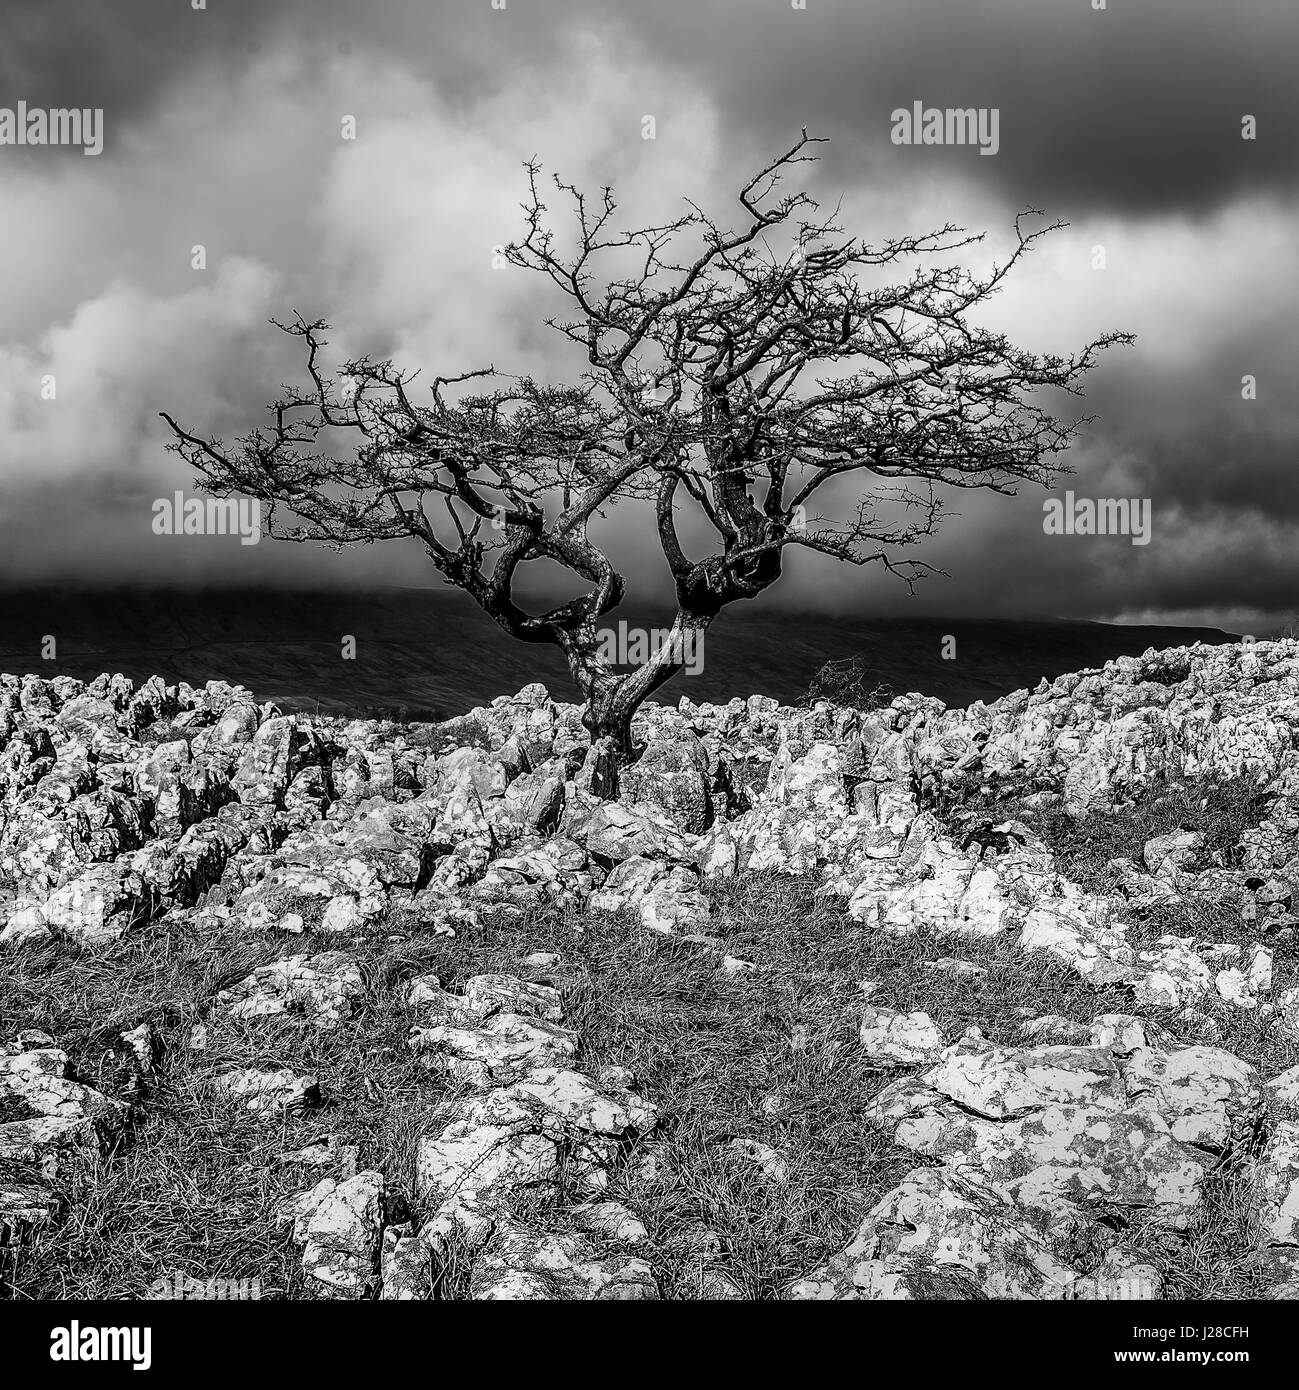 Limestone Pavement and Lone Hawthorn Tree at Twisleton Scar, near Ingleton, Ribblesdale, Yorkshire Dales, UK - Stock Image